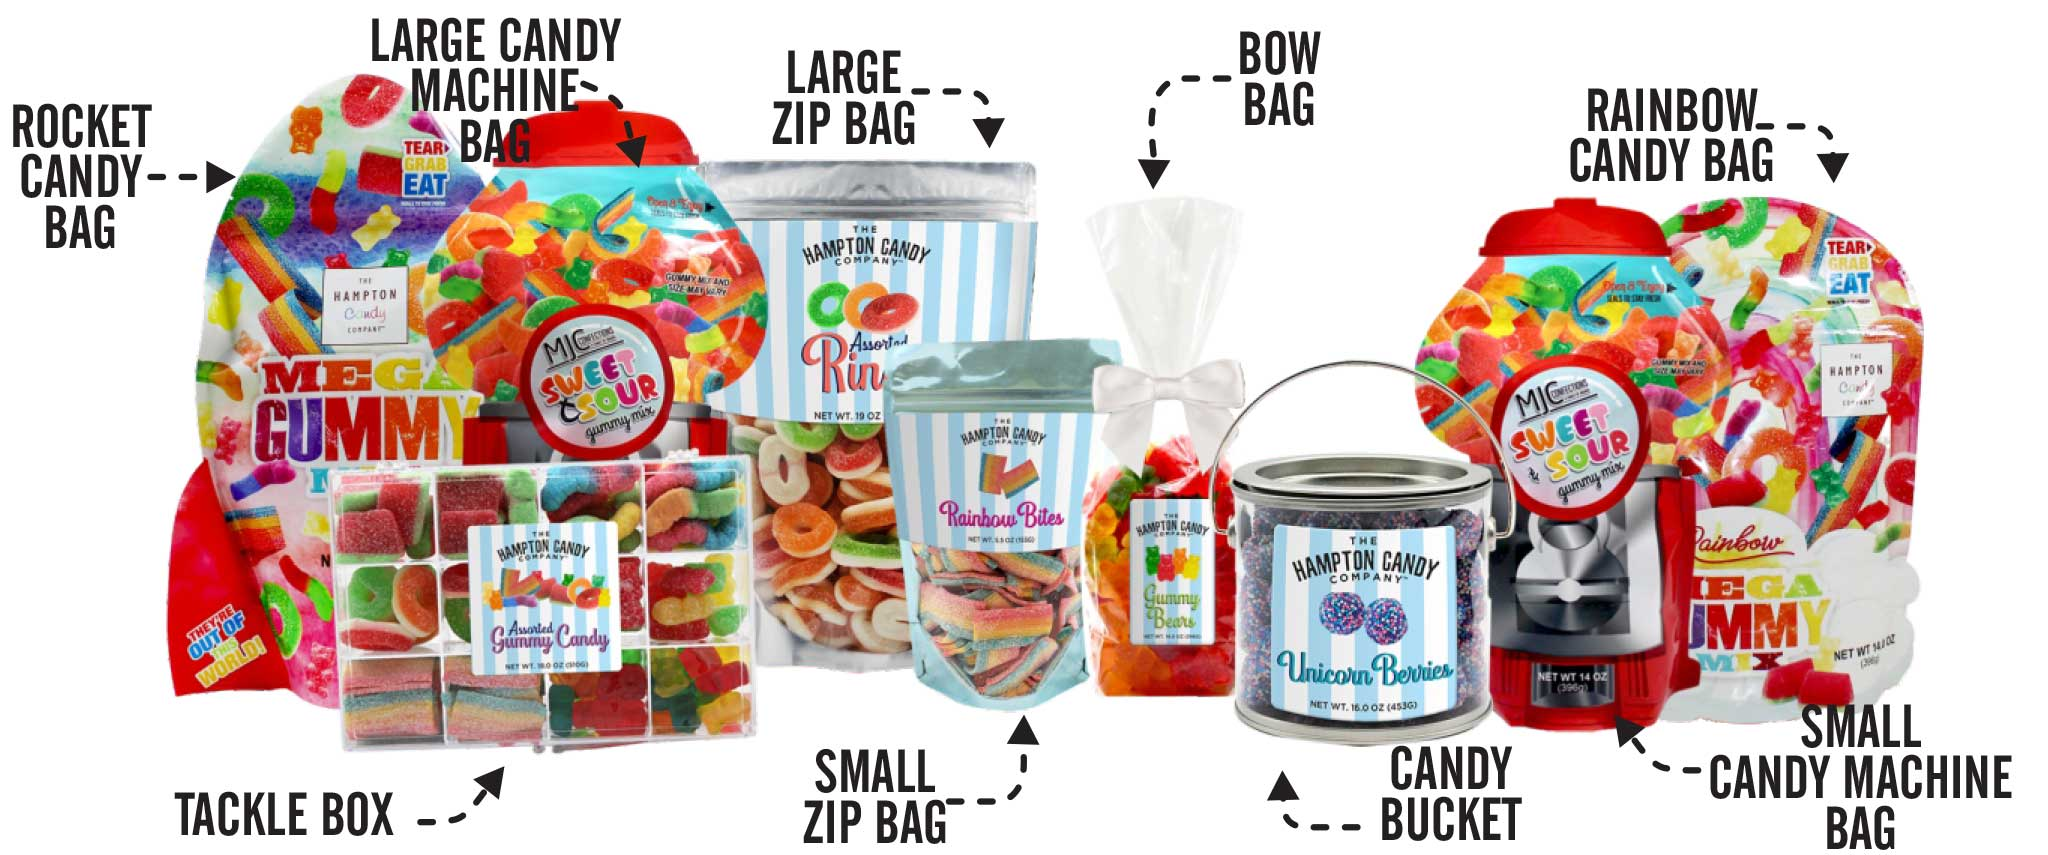 Candy Gifts - Gummy Candy, Candy Buckets, Zip Bags, Tackle Boxes & More